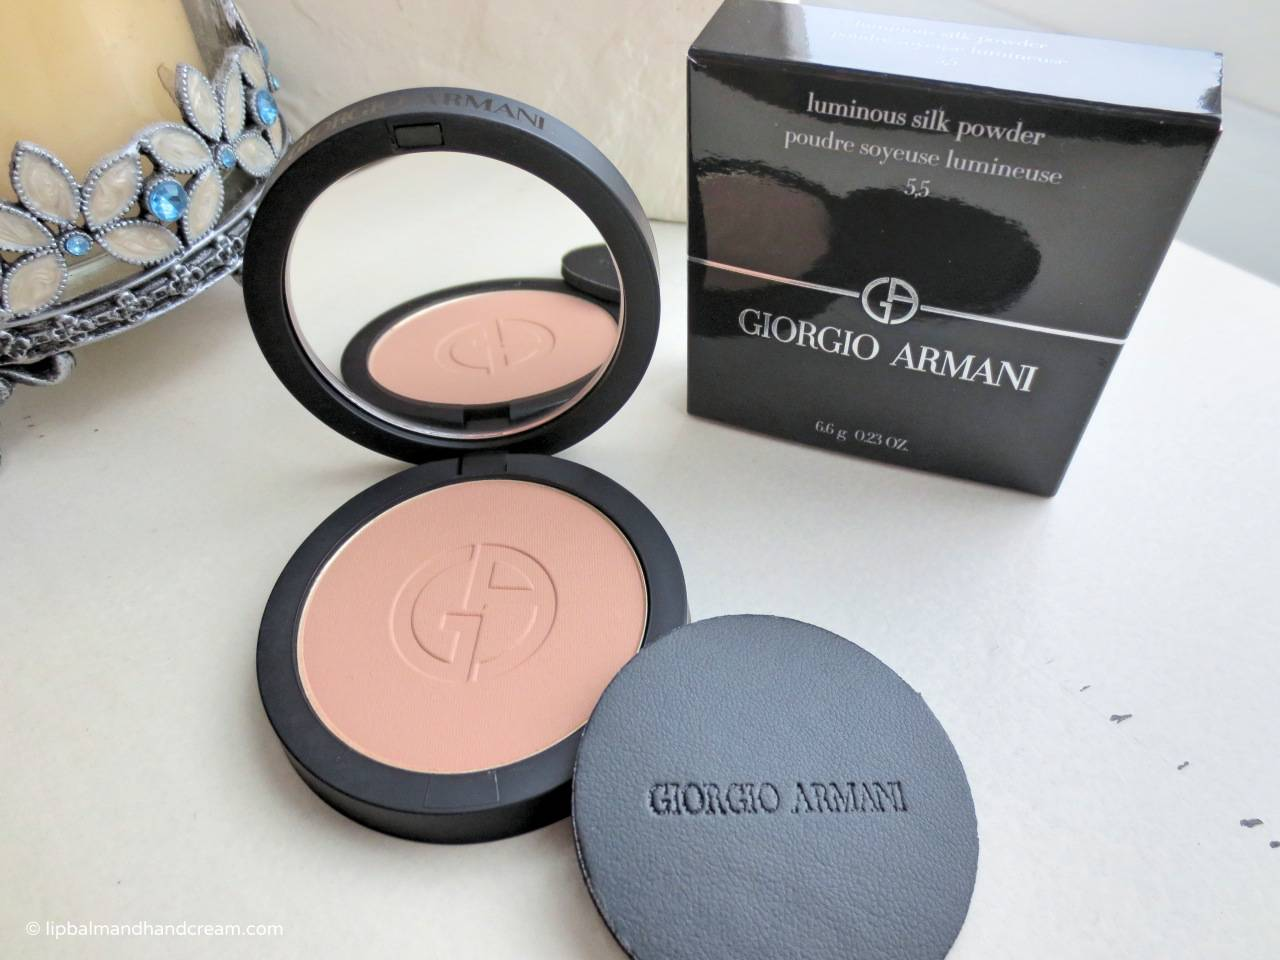 Giorgio Armani luminous silk powder in 5.5.